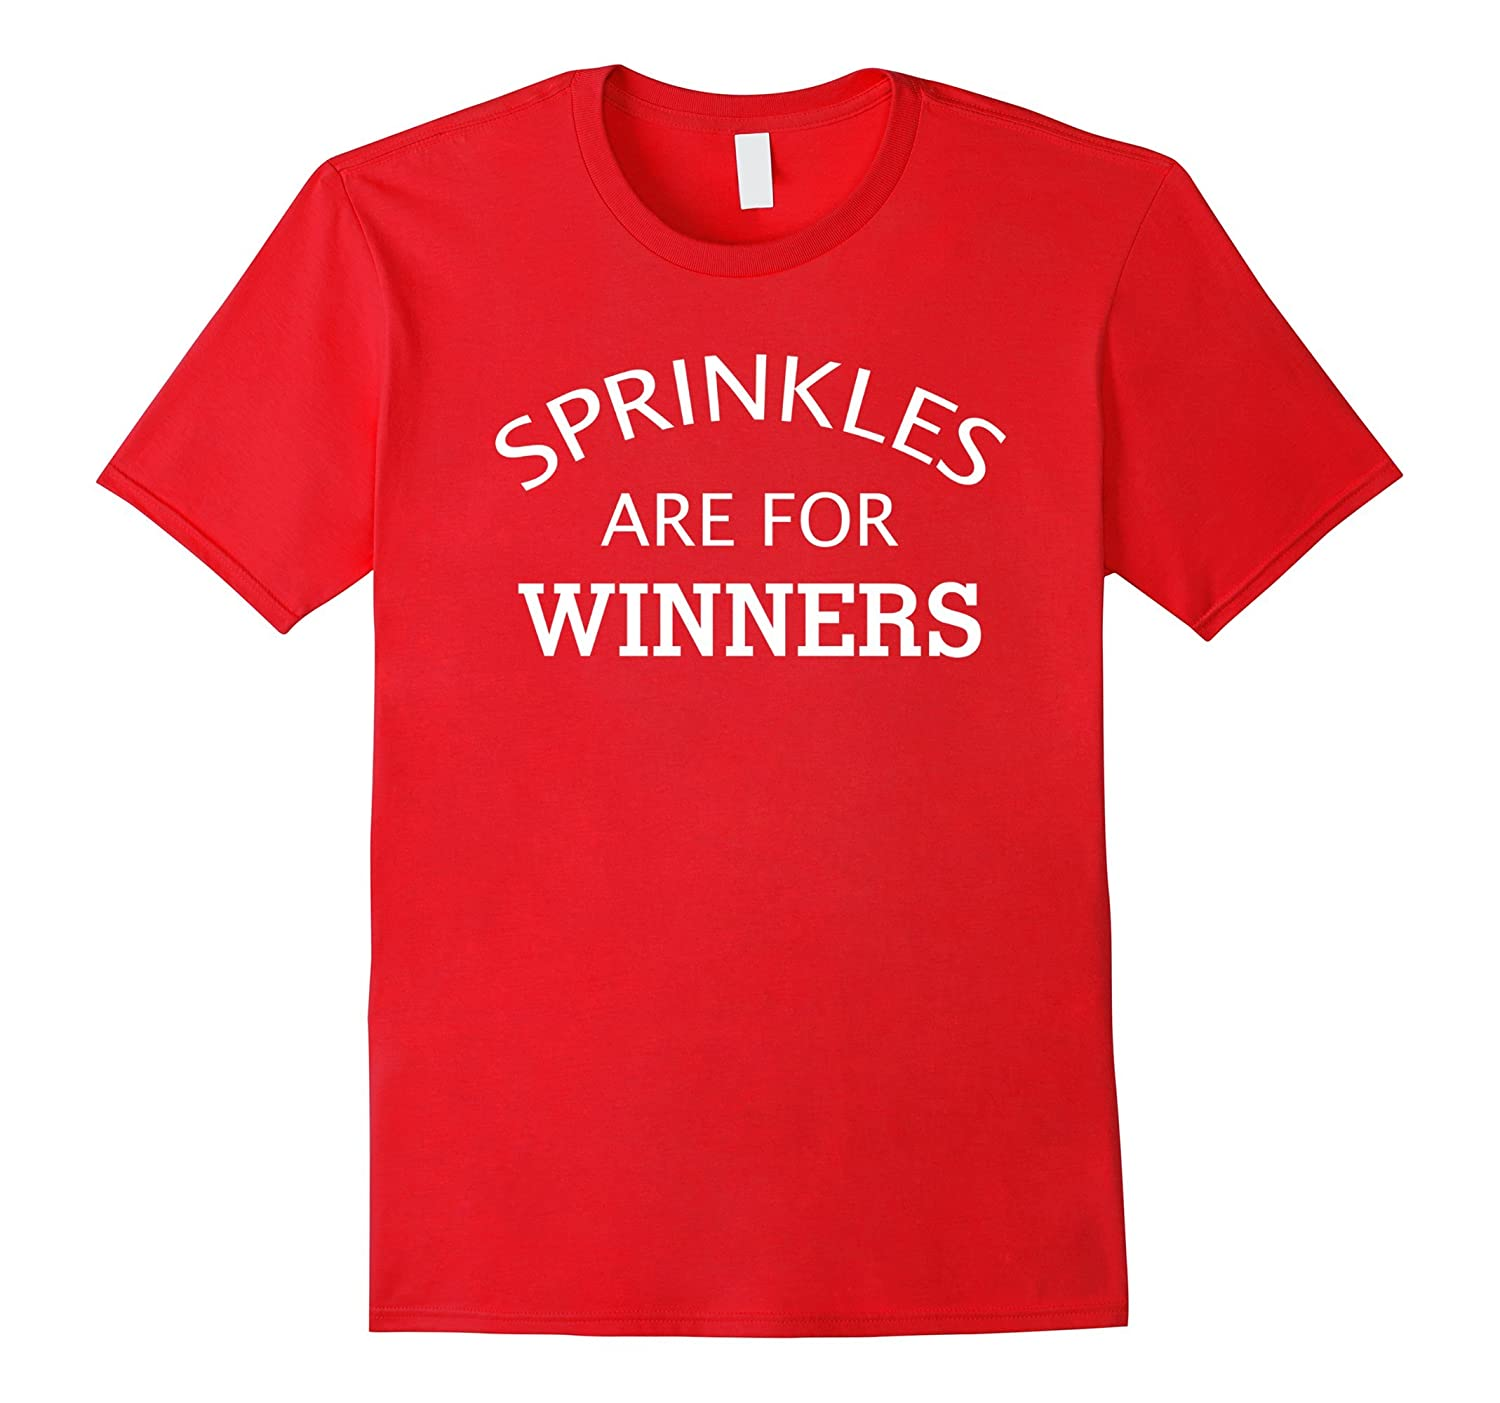 Sprinkles Are For Winners - Premium Cotton T-Shirt-RT